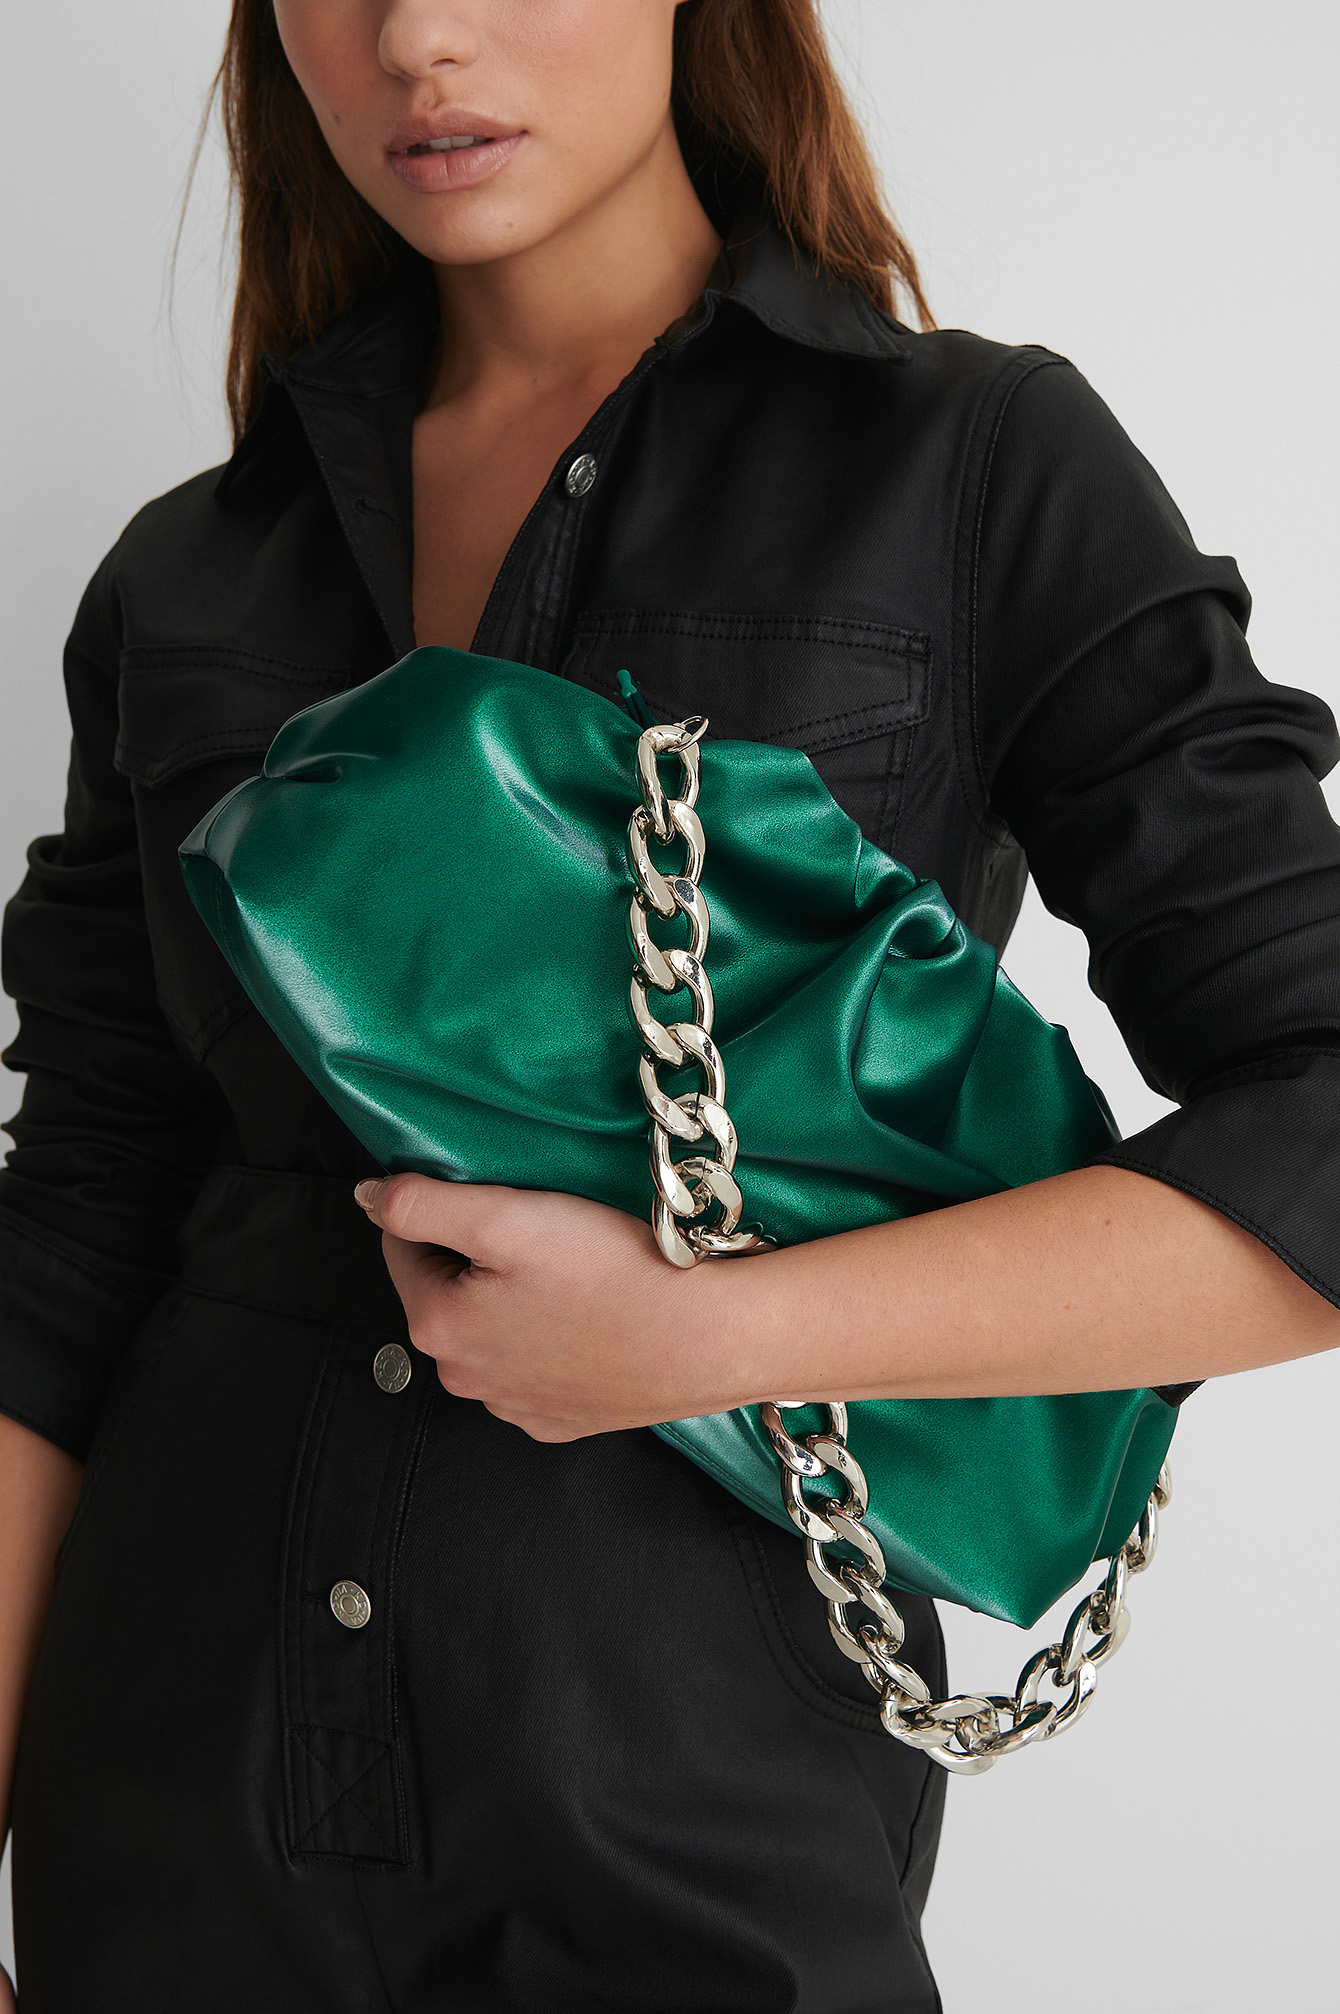 Emerald Green Sac Bourse